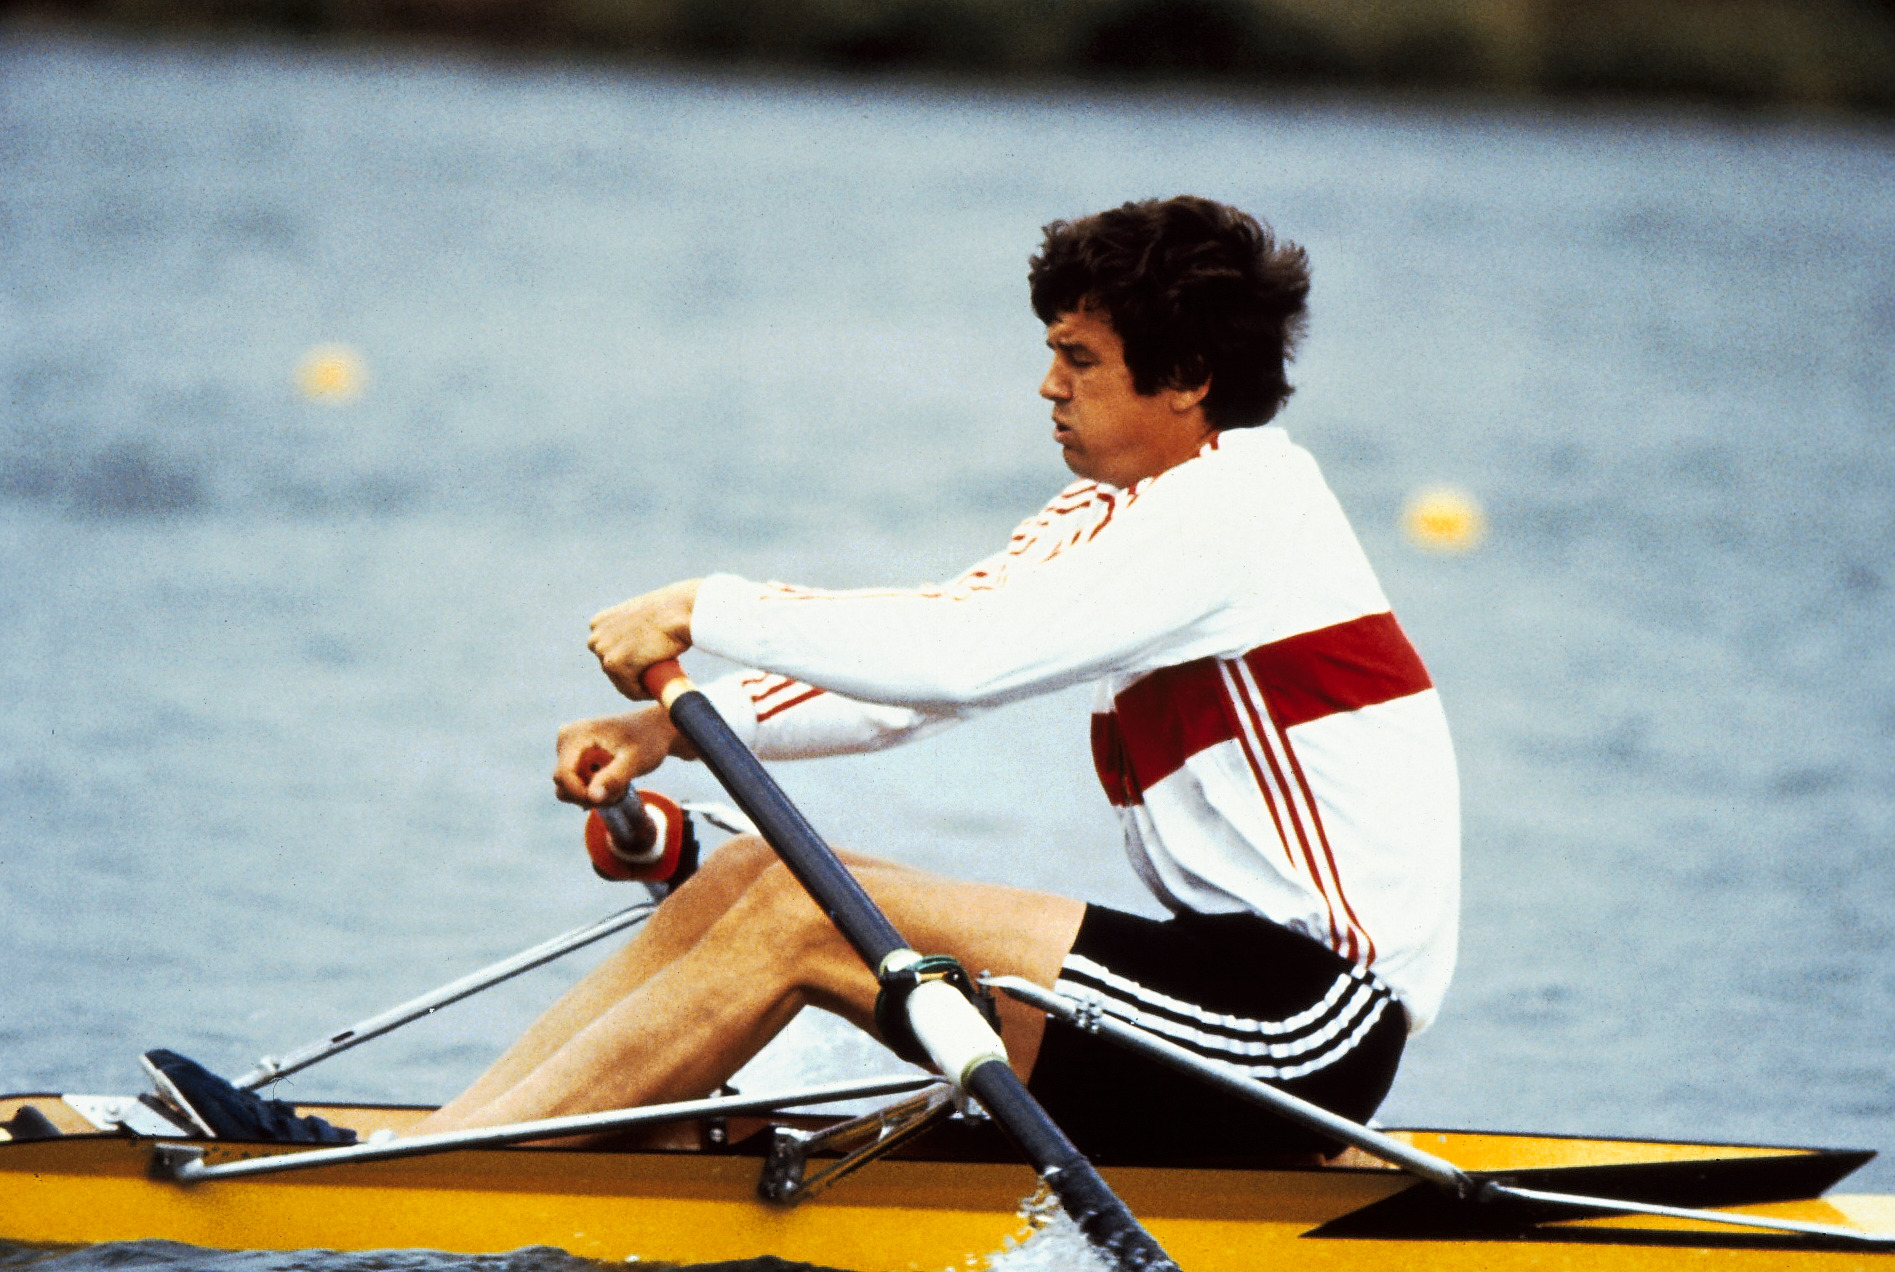 Peter Michael Kolbe sculling with poor hand positions